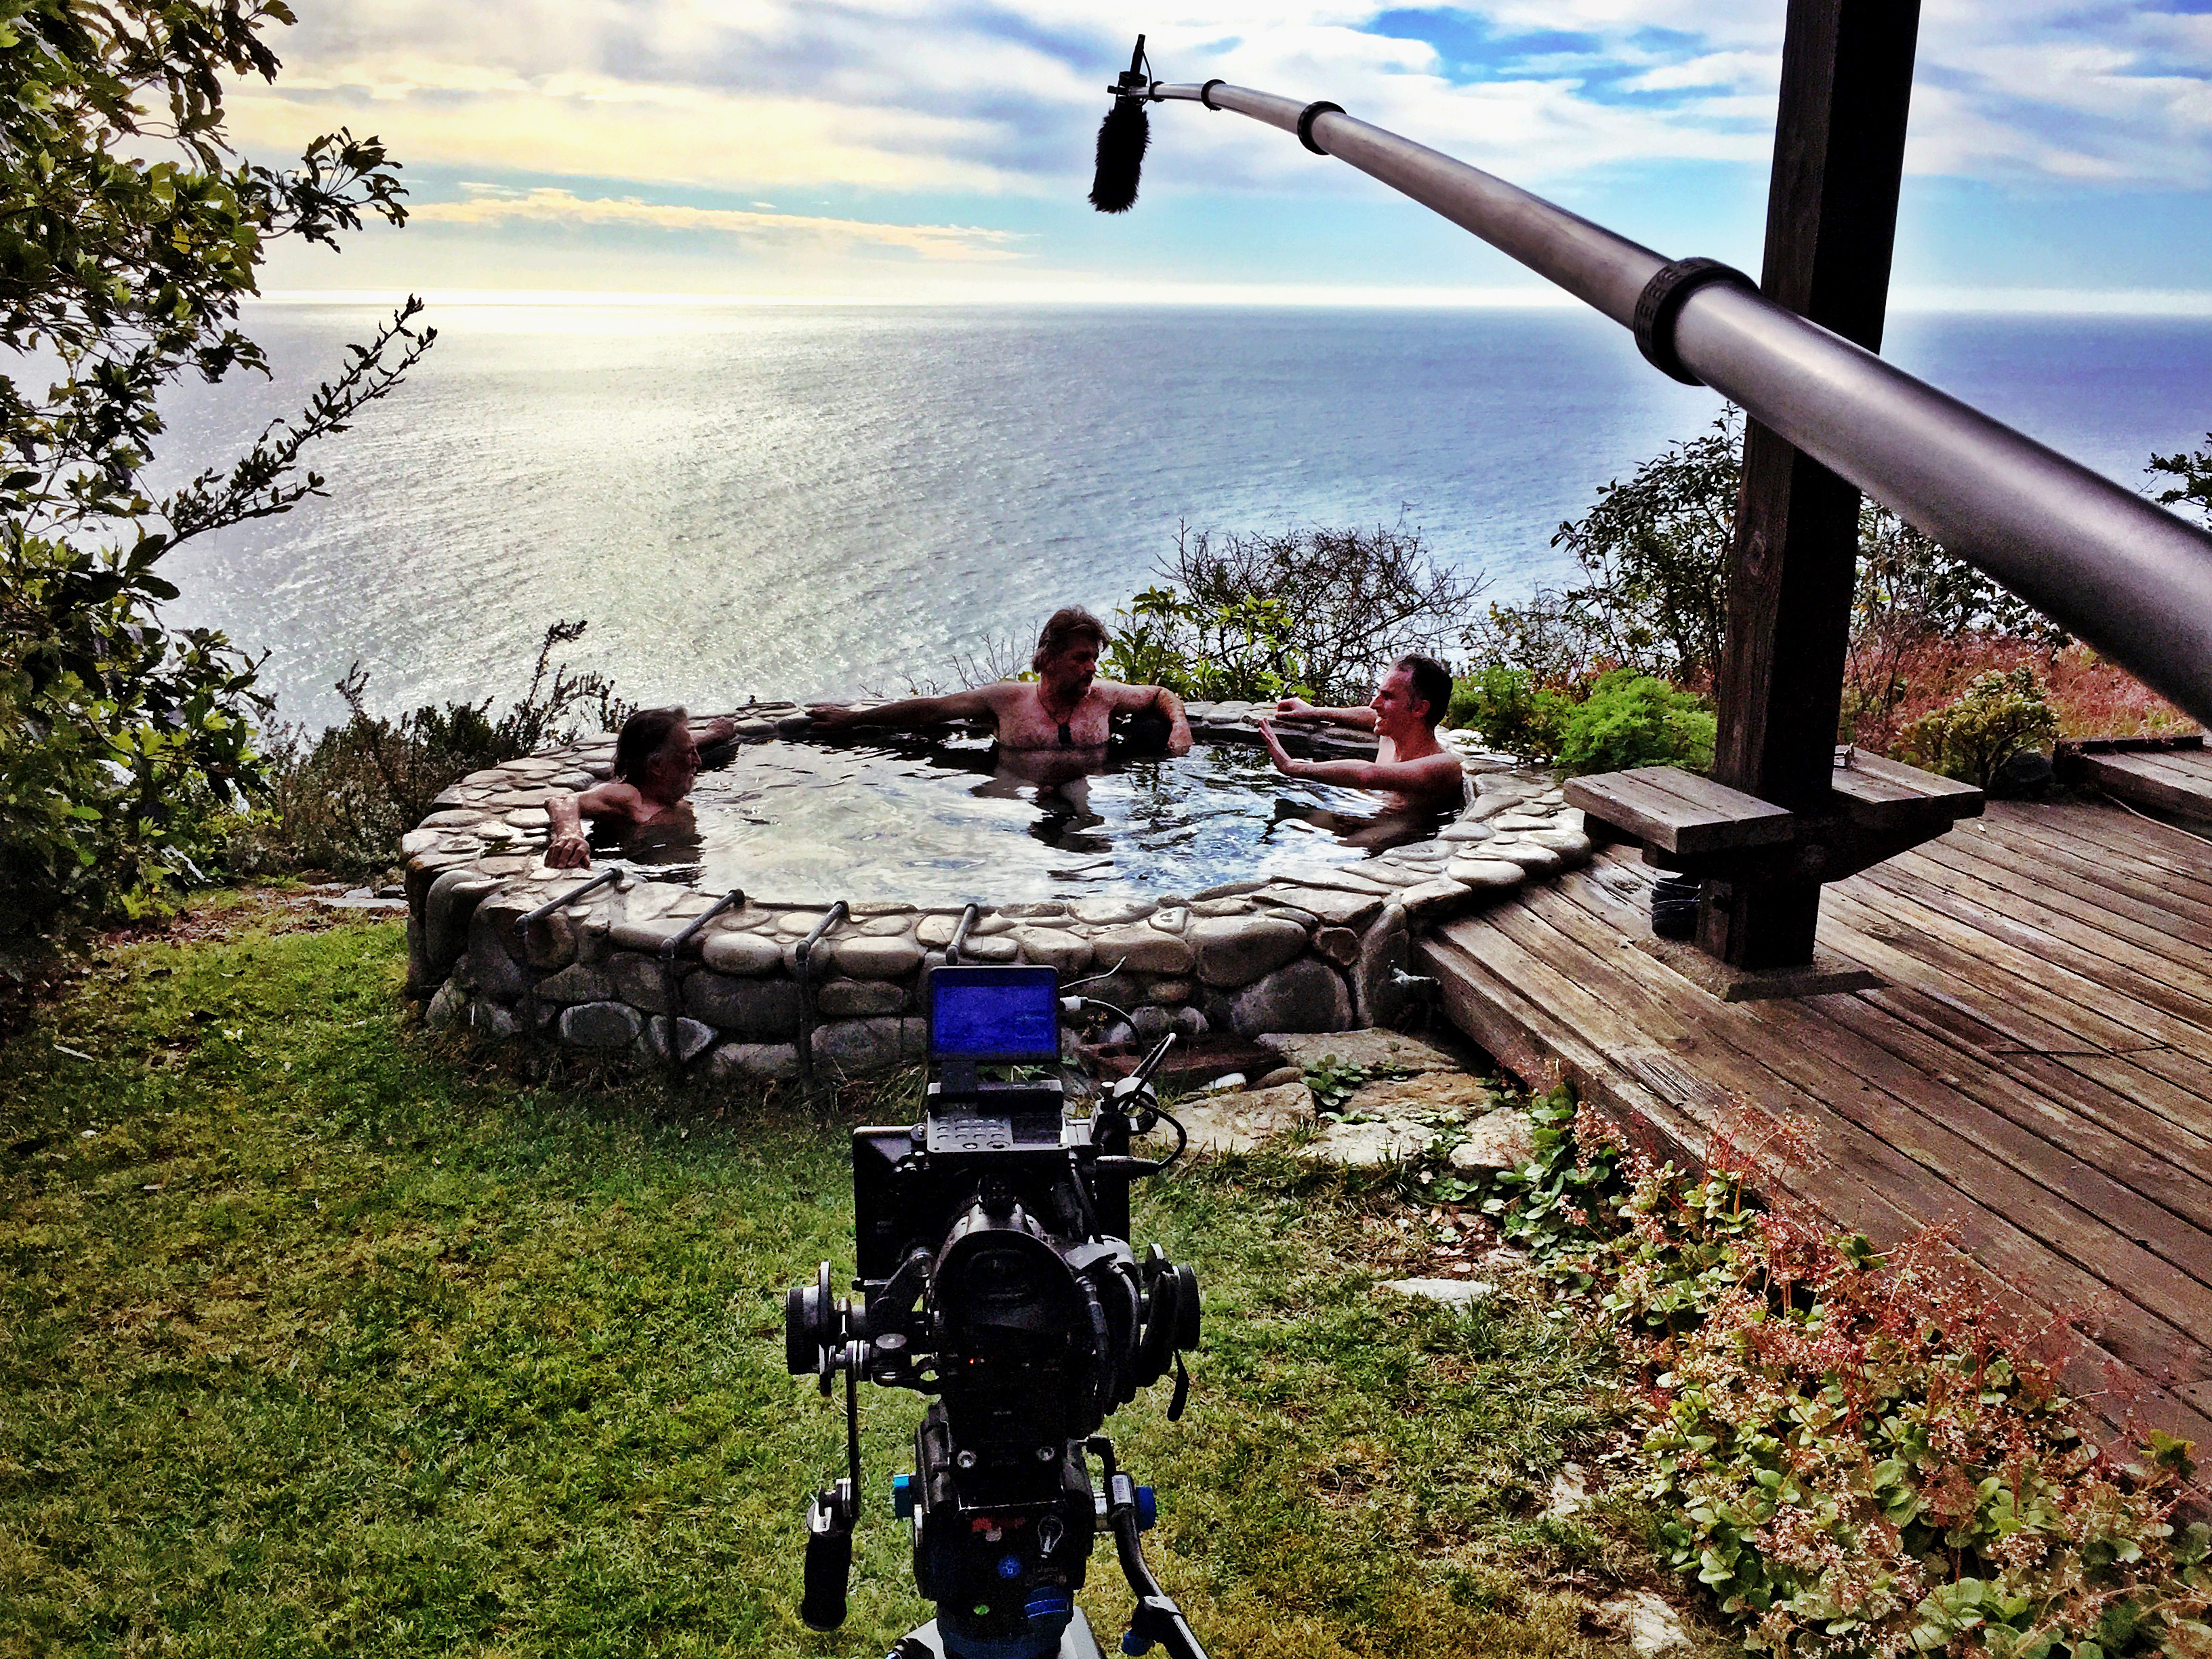 Interview session in the hot tub with Vilmos and James Chressanthis, ASC. Photo Tad Chamberlain